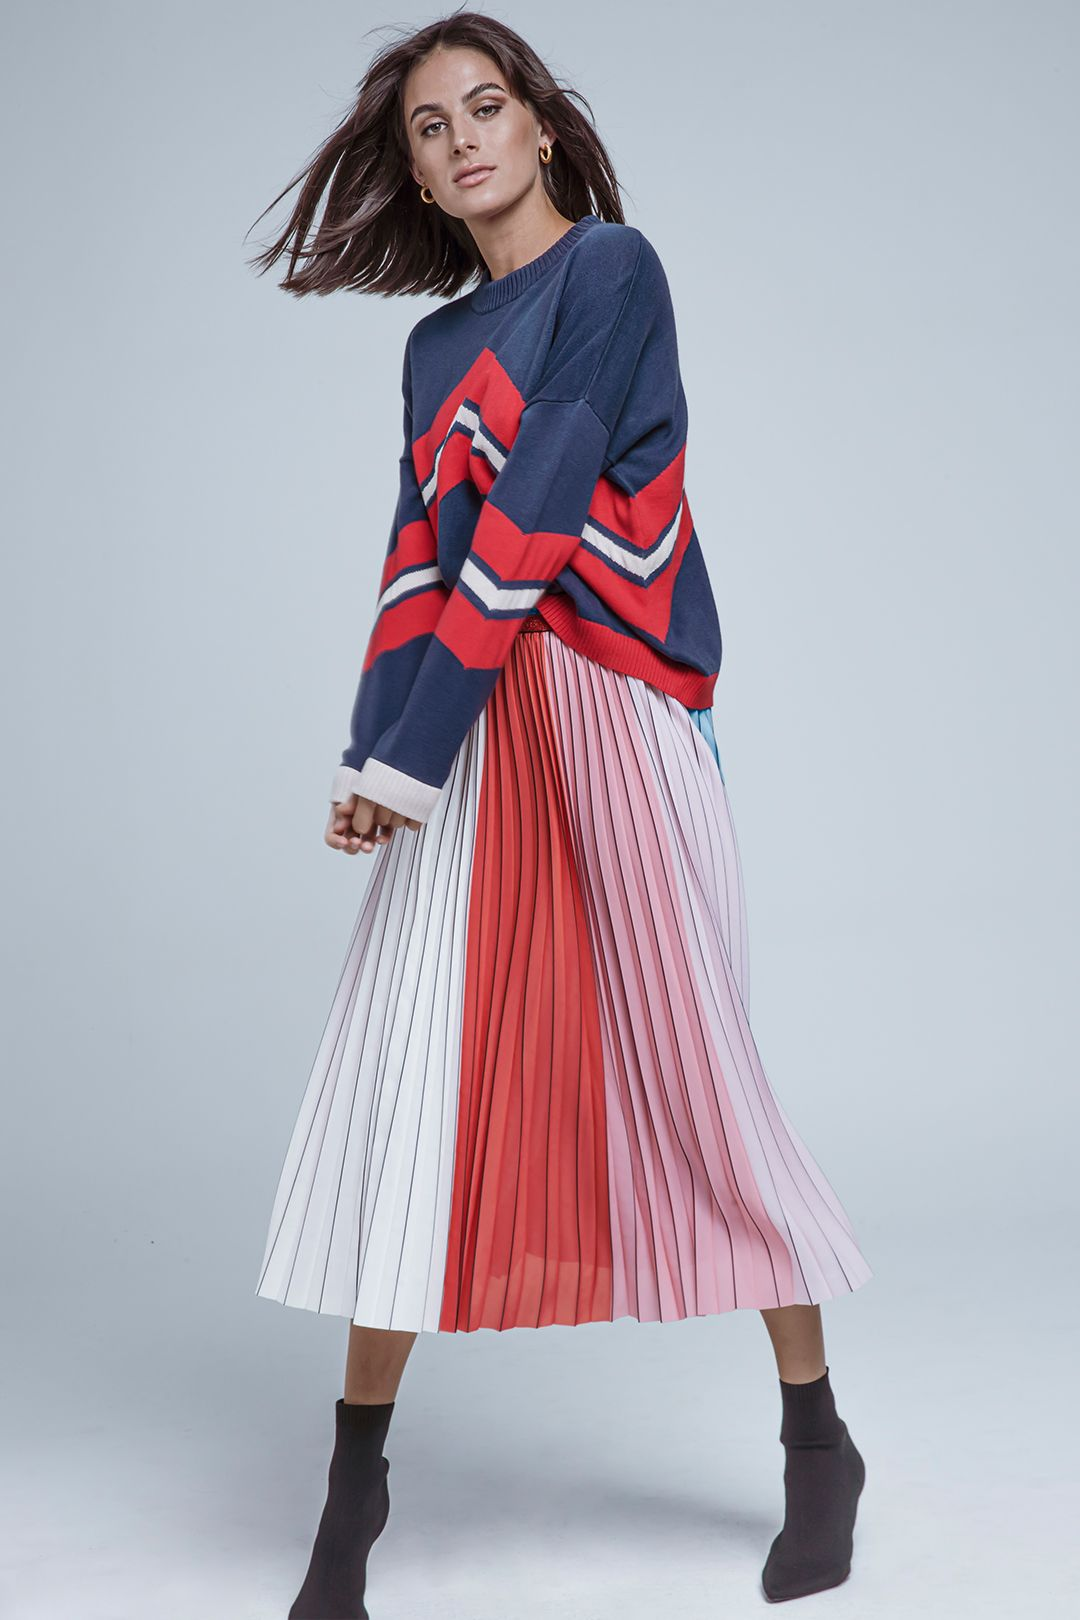 coop-by-trelise-cooper-let-them-pleat-cake-skirt-campaign